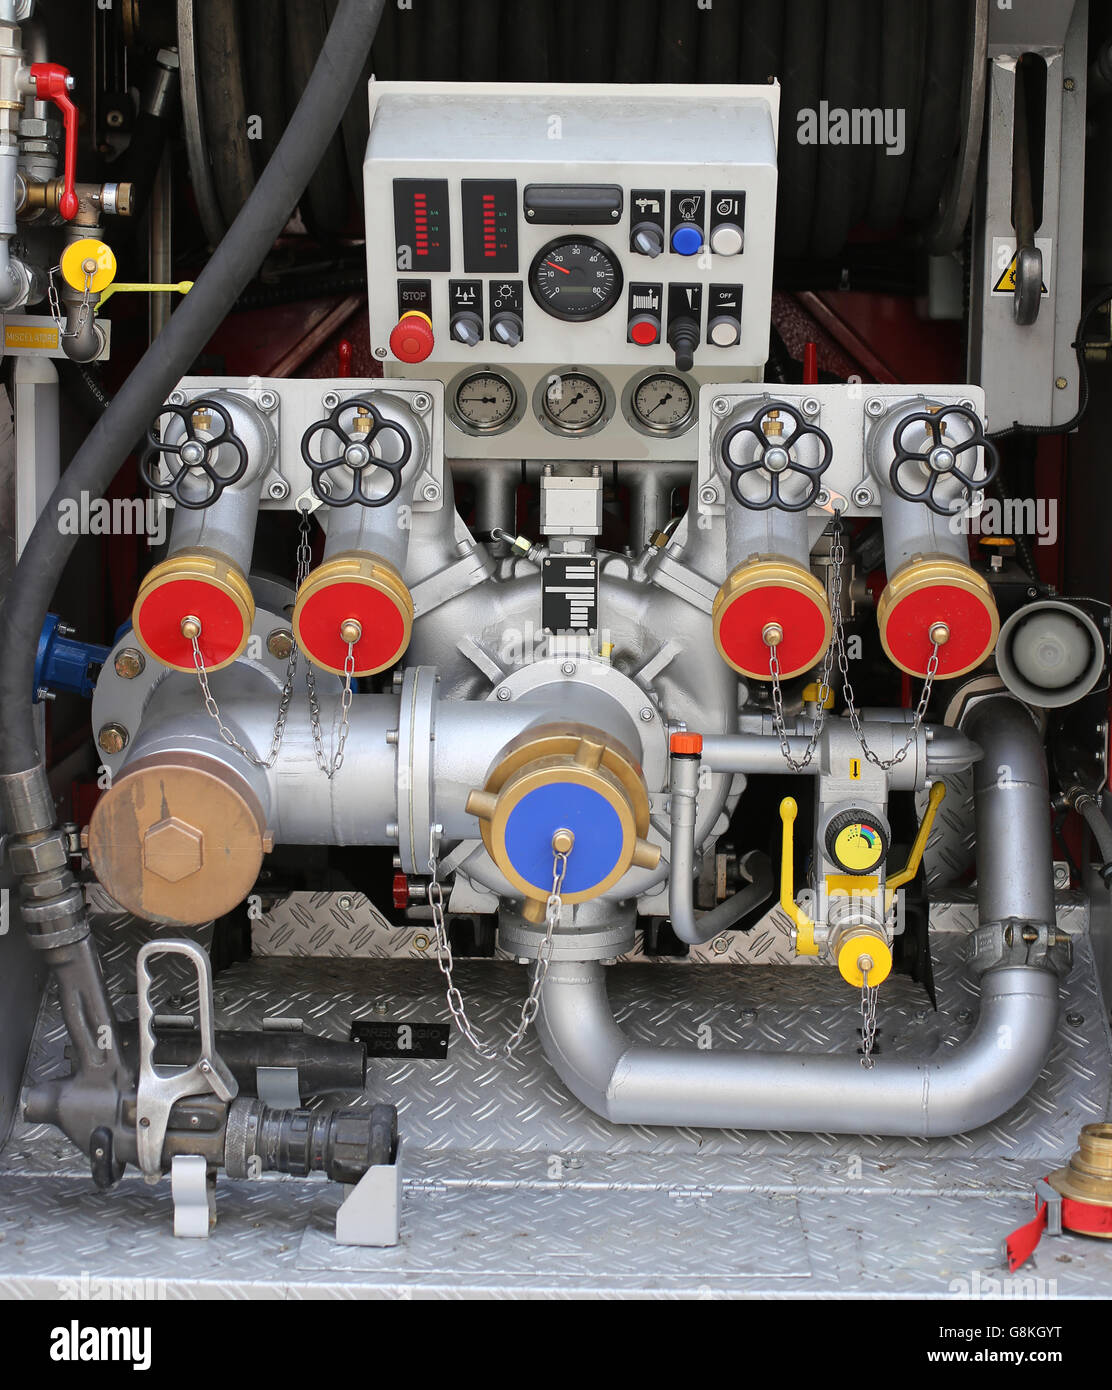 big automatic pump nozzles in fire truck with gauges and controls Stock Photo